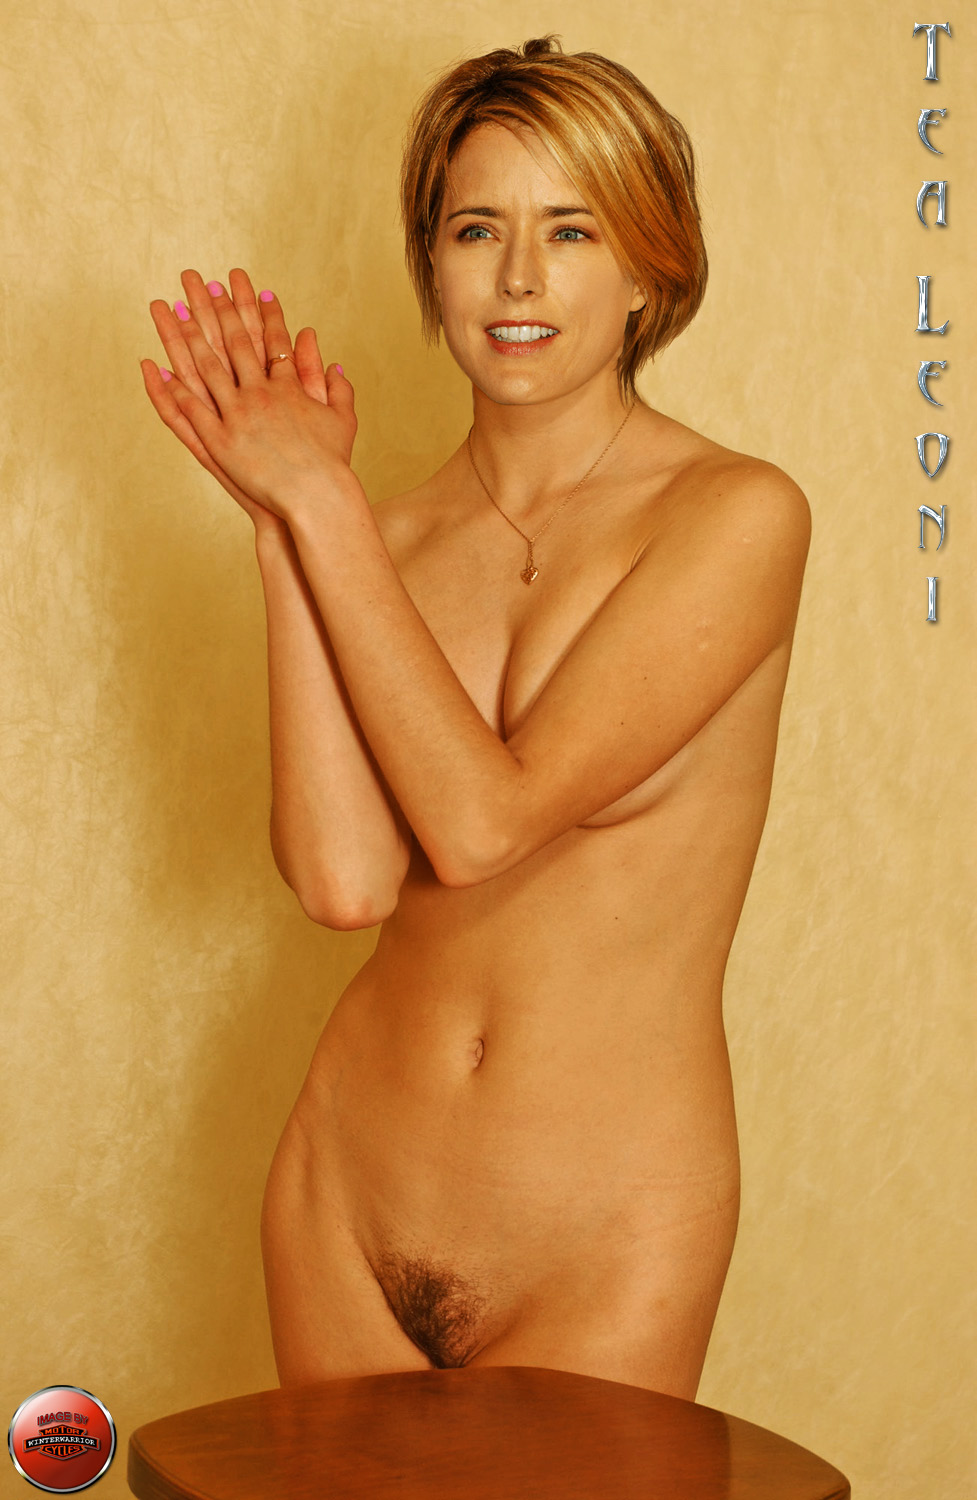 Tea Leoni Nude Photo 108